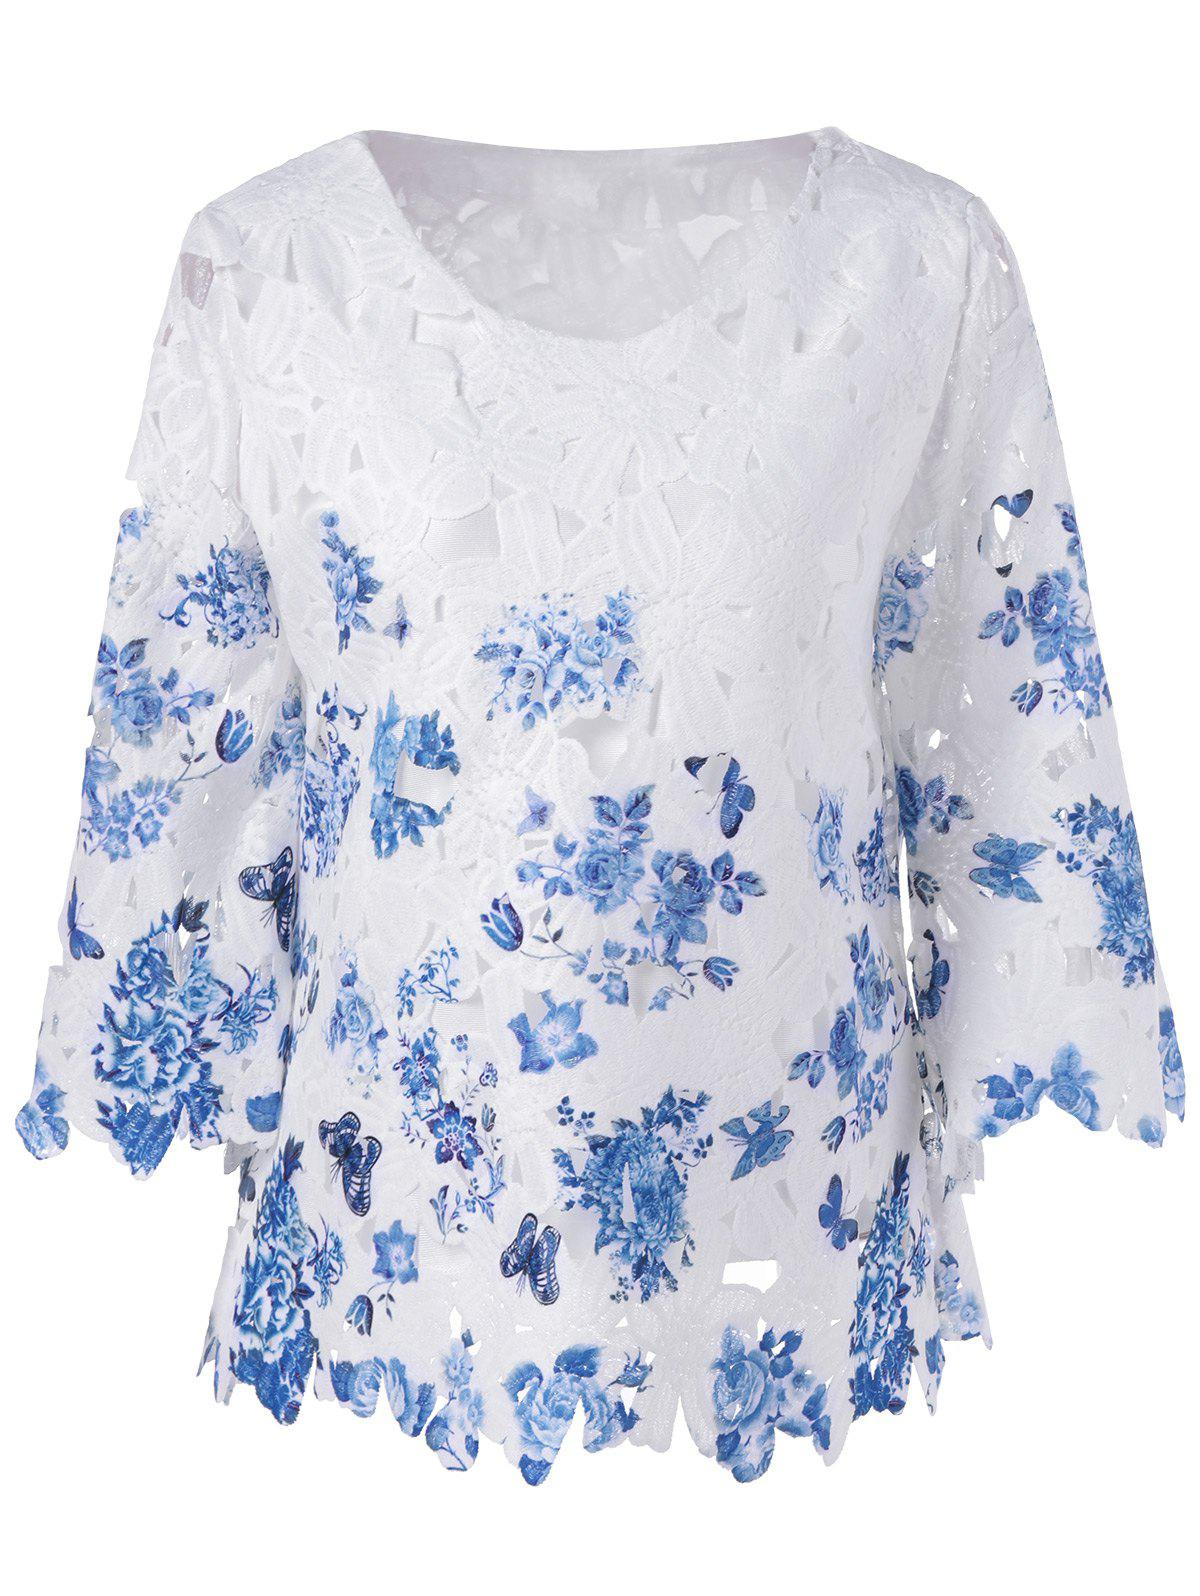 Vintage Embroidery Crochet 3/4 Sleeve Blouse - BLUE/WHITE ONE SIZE(FIT SIZE XS TO M)